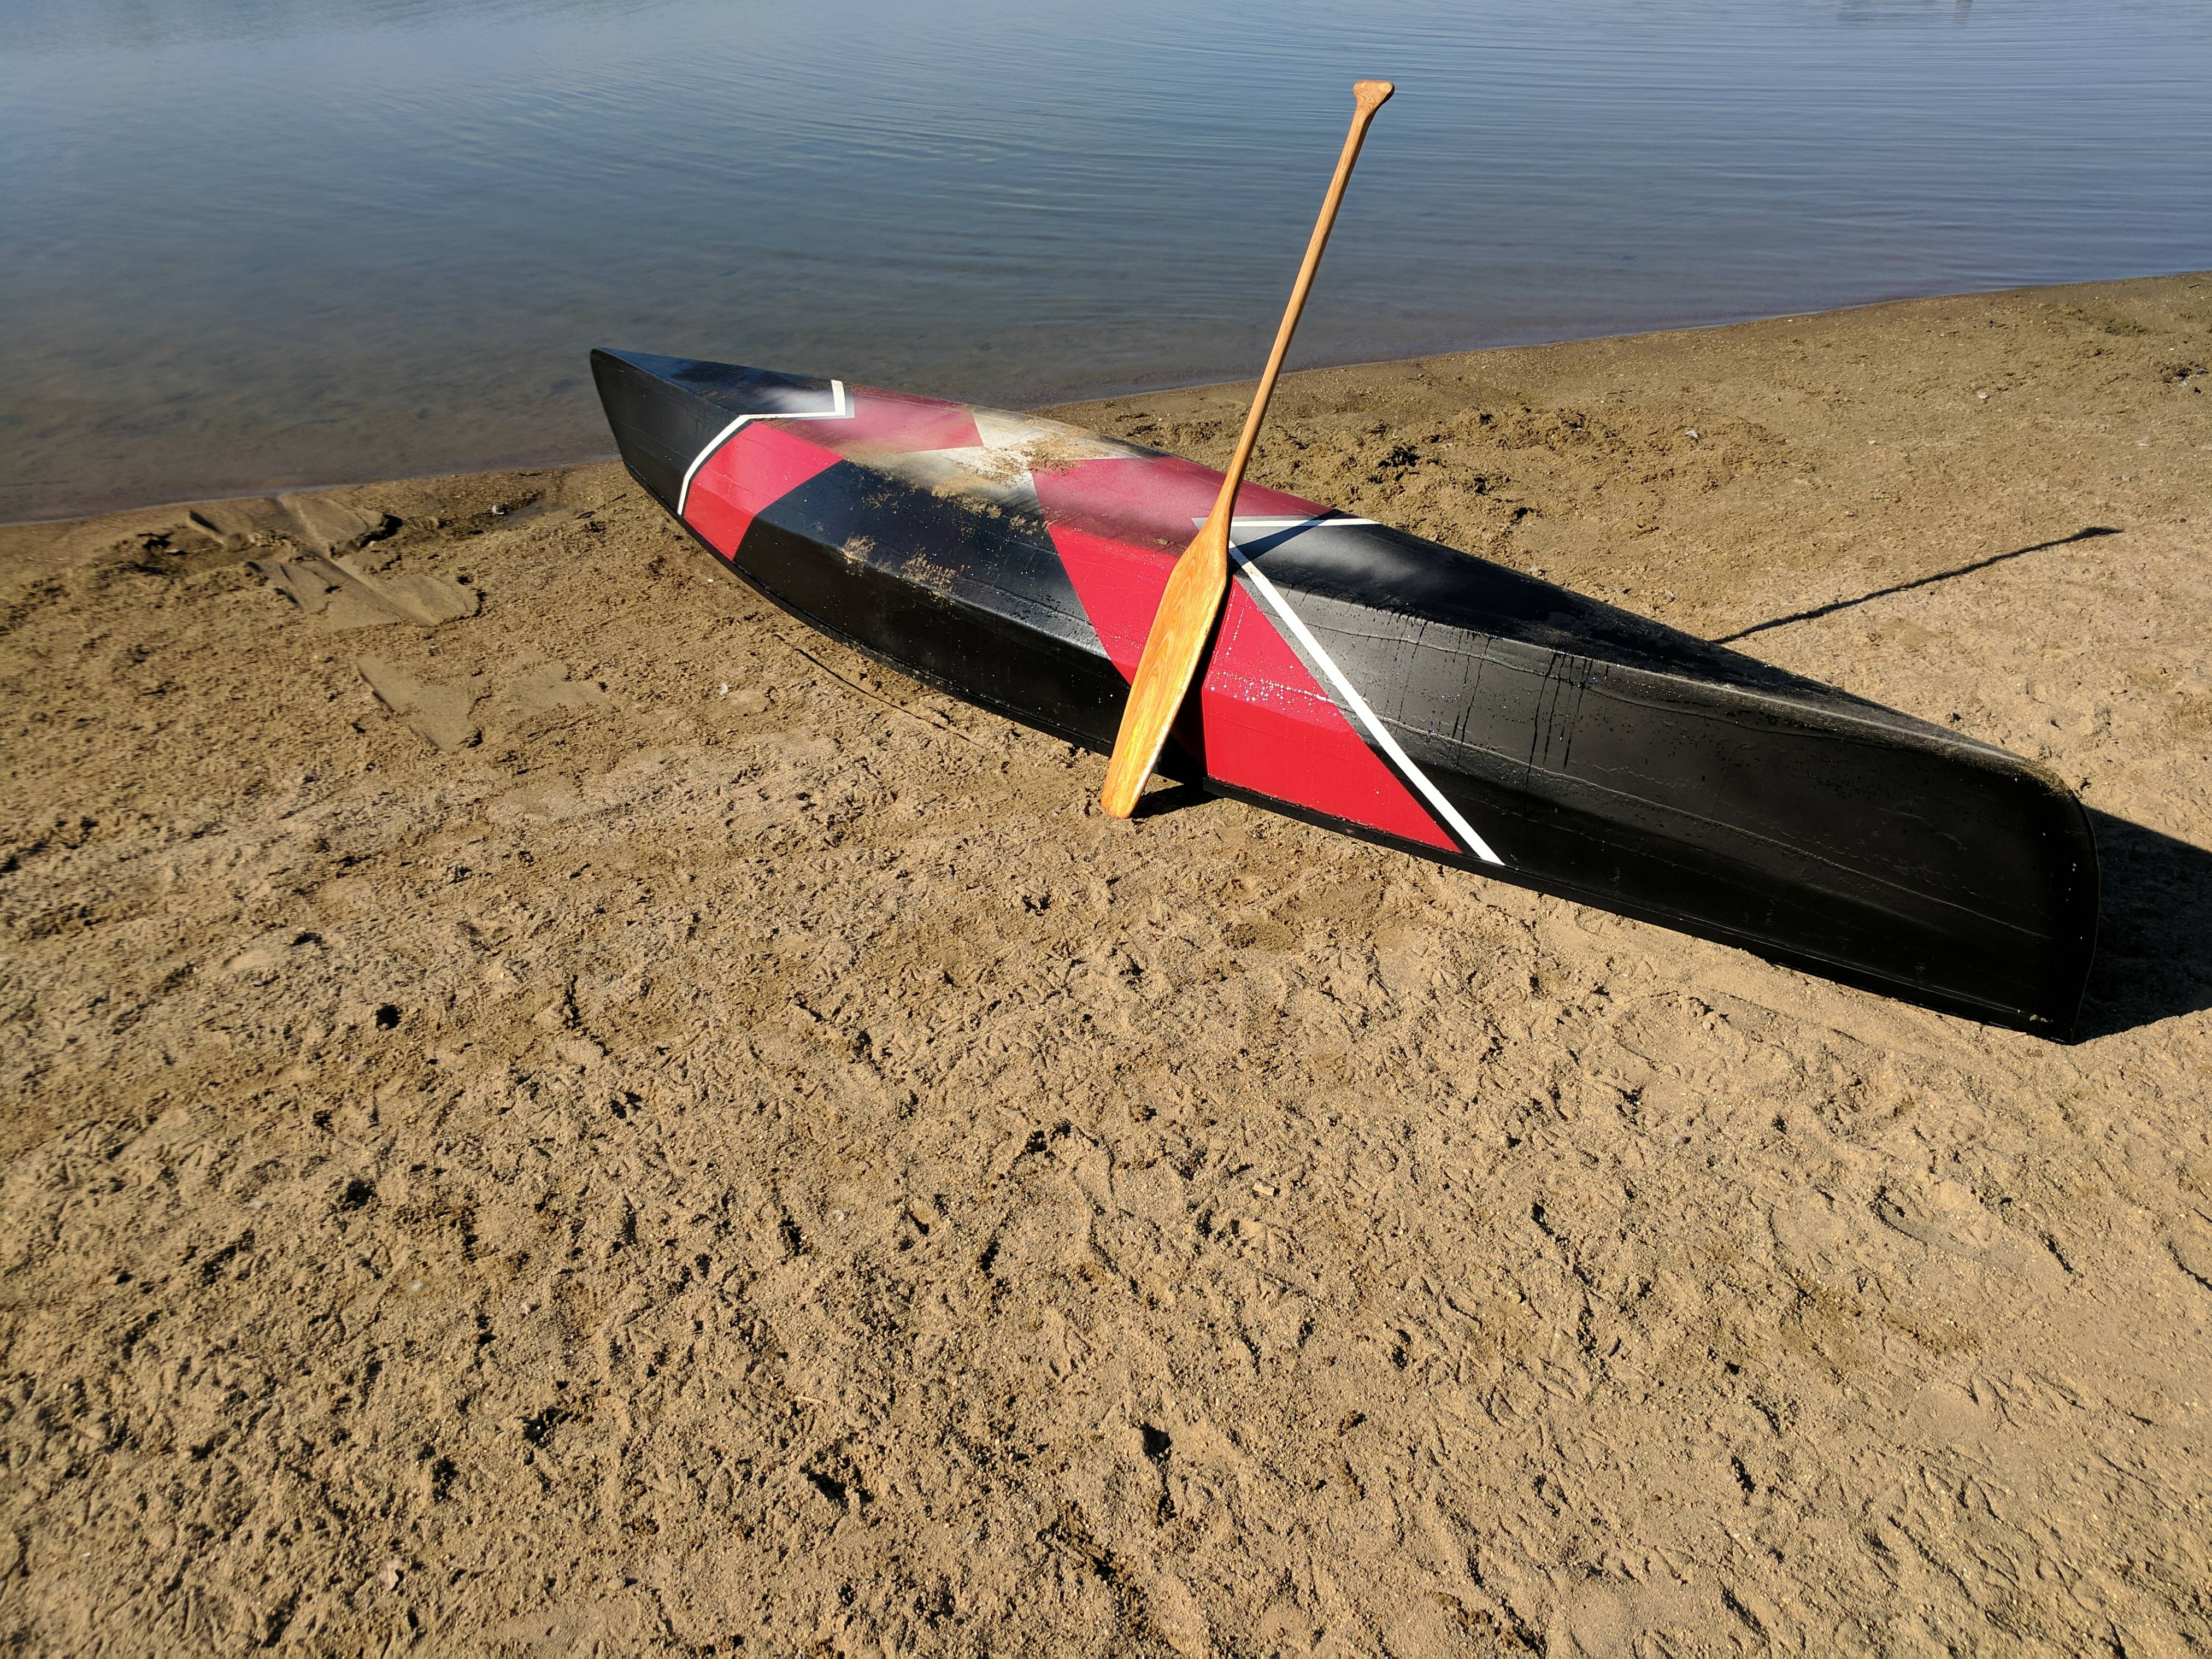 This Guy Built a Canoe from Scratch Inside His Apartment